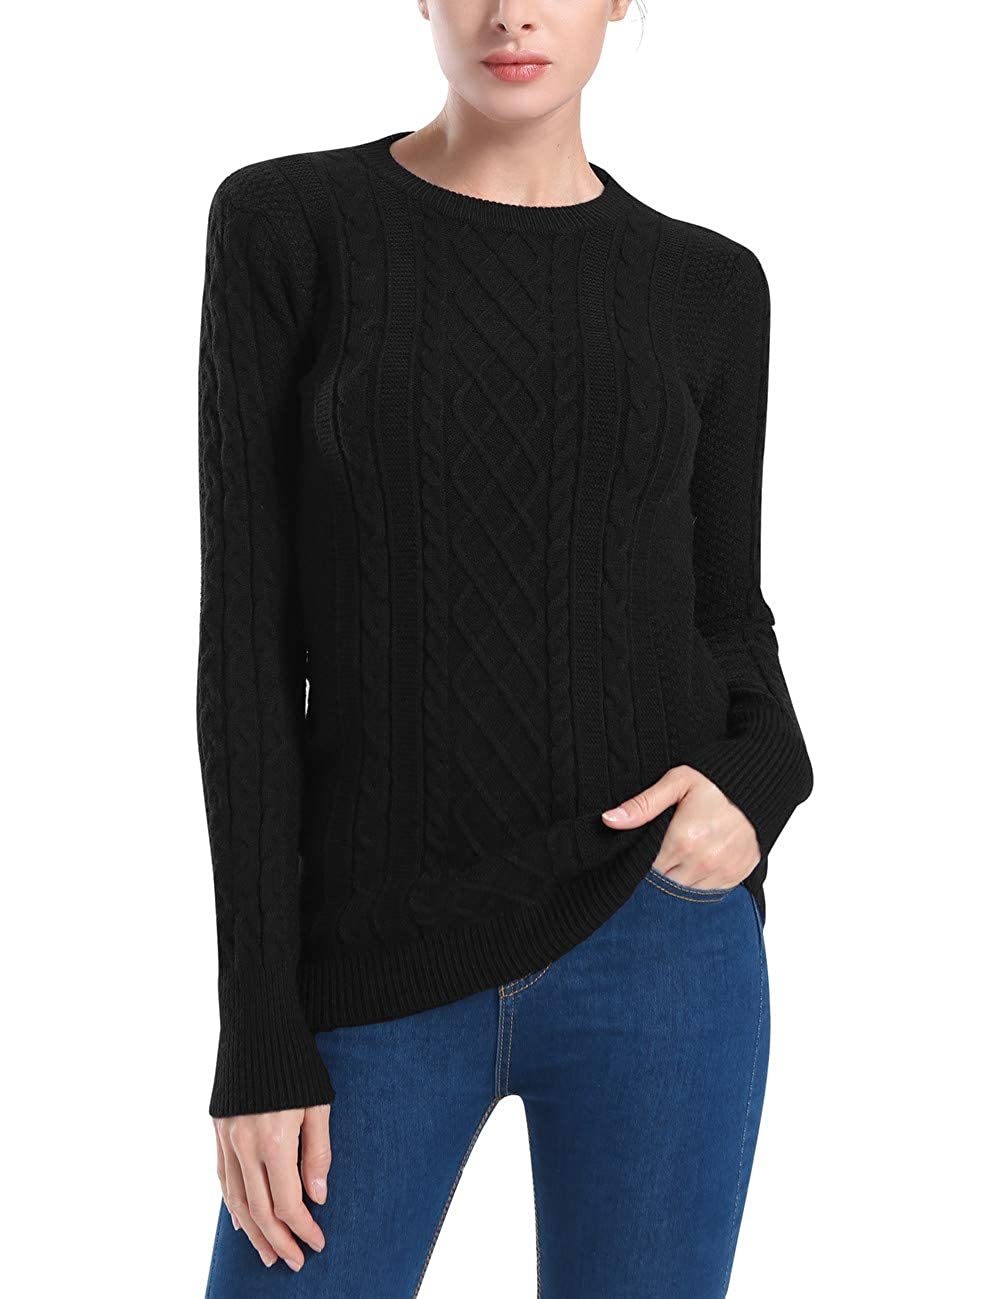 3cd769c1c6 Rocorose Women s Crew Neck Cable Knitted Long Sleeve Tunic Sweaters at  Amazon Women s Clothing store